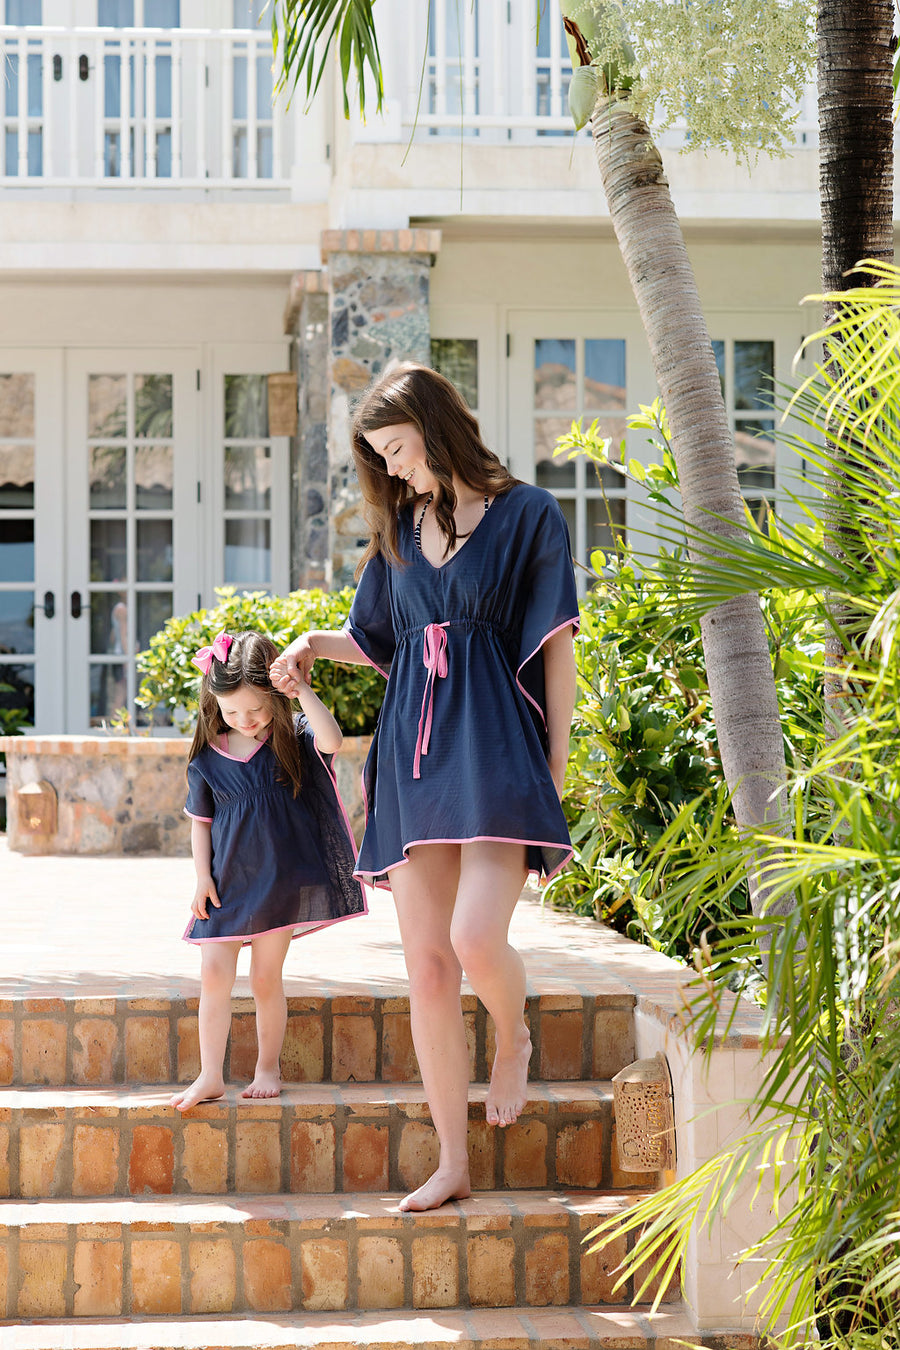 Tipsy Tunic - Nantucket Navy with Hamptons Hot Pink